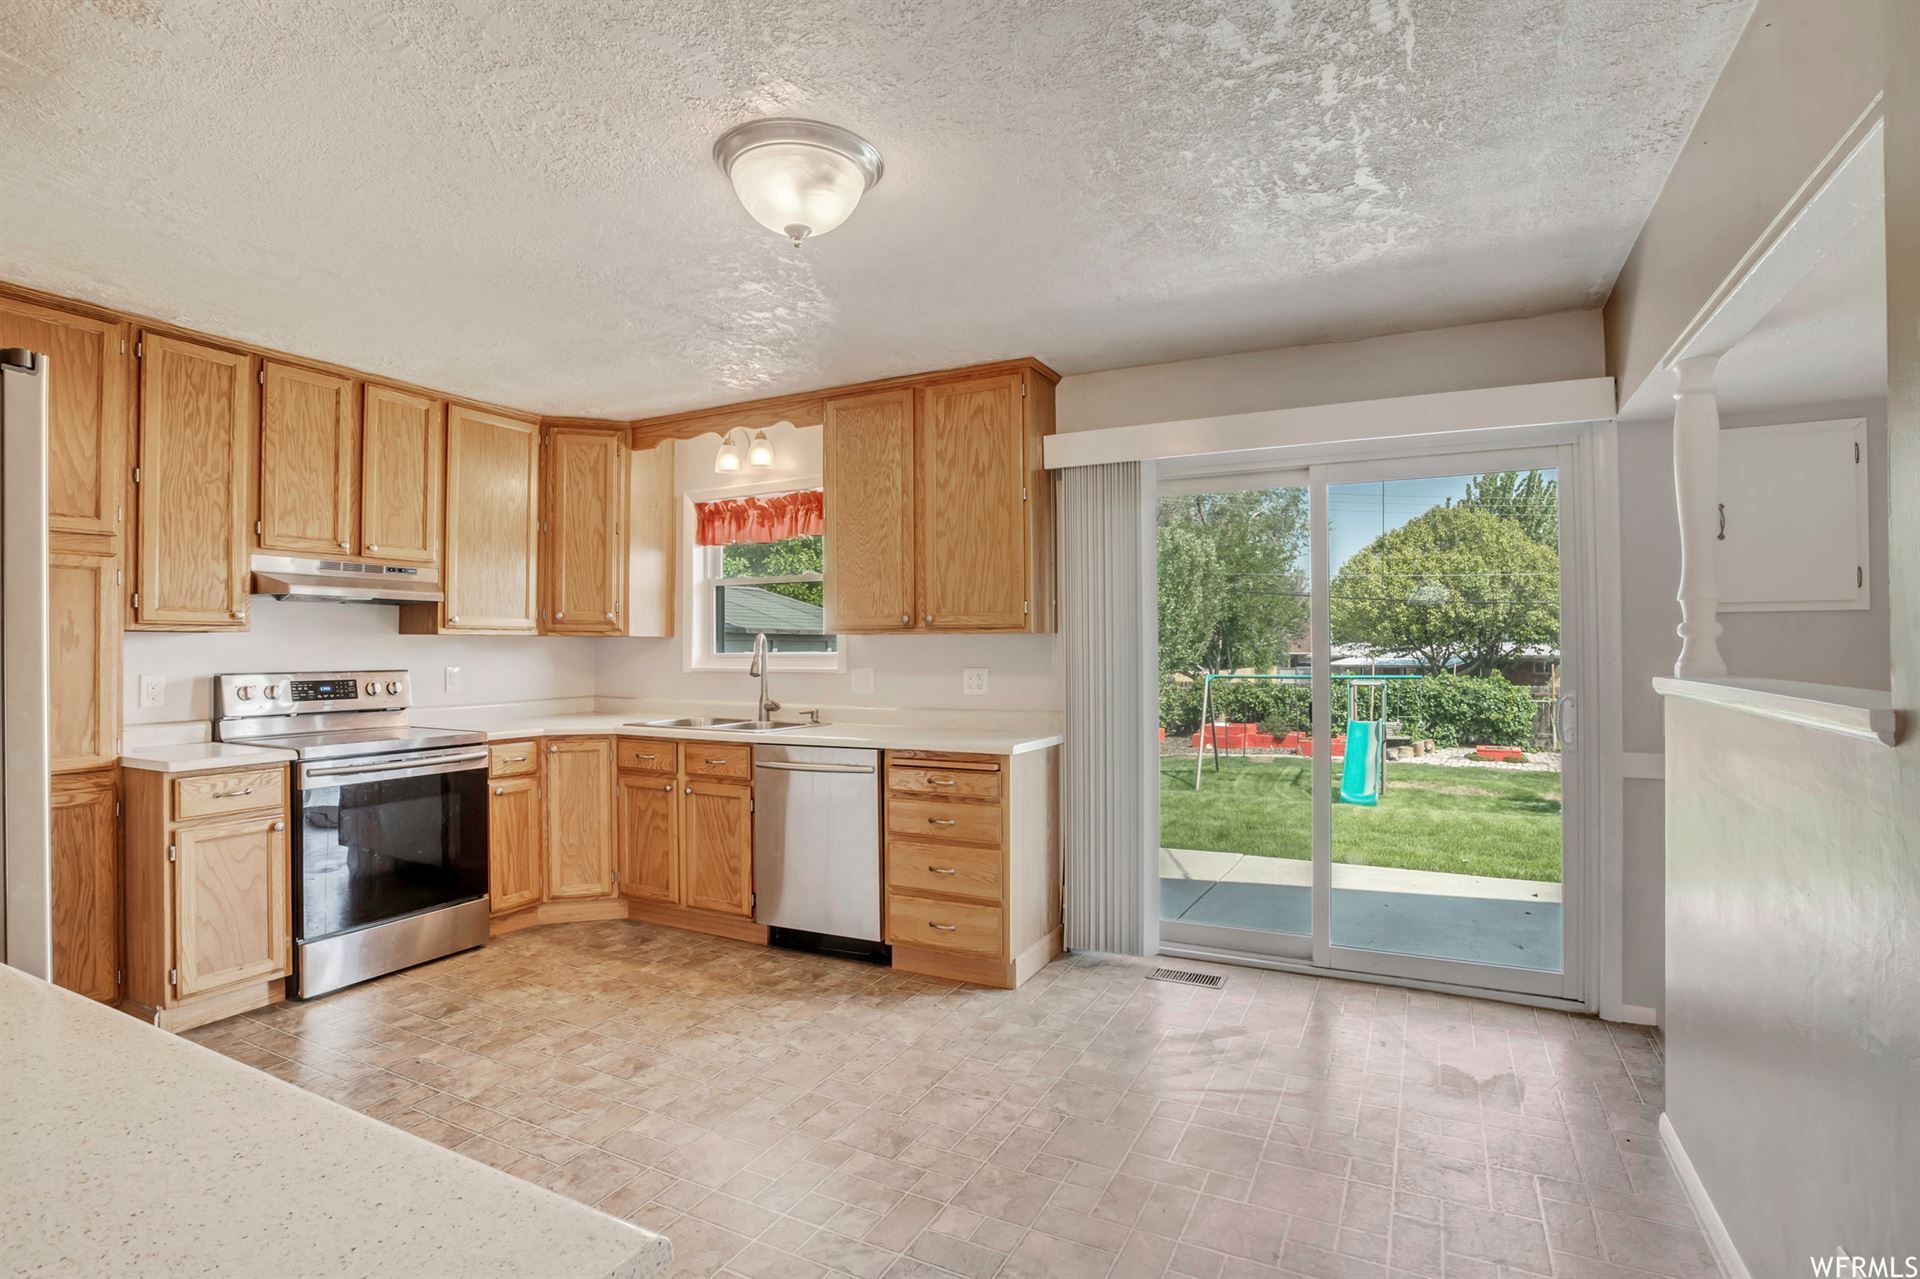 Photo of 1776 W CHAMPAGNE S AVE, Taylorsville, UT 84129 (MLS # 1764682)